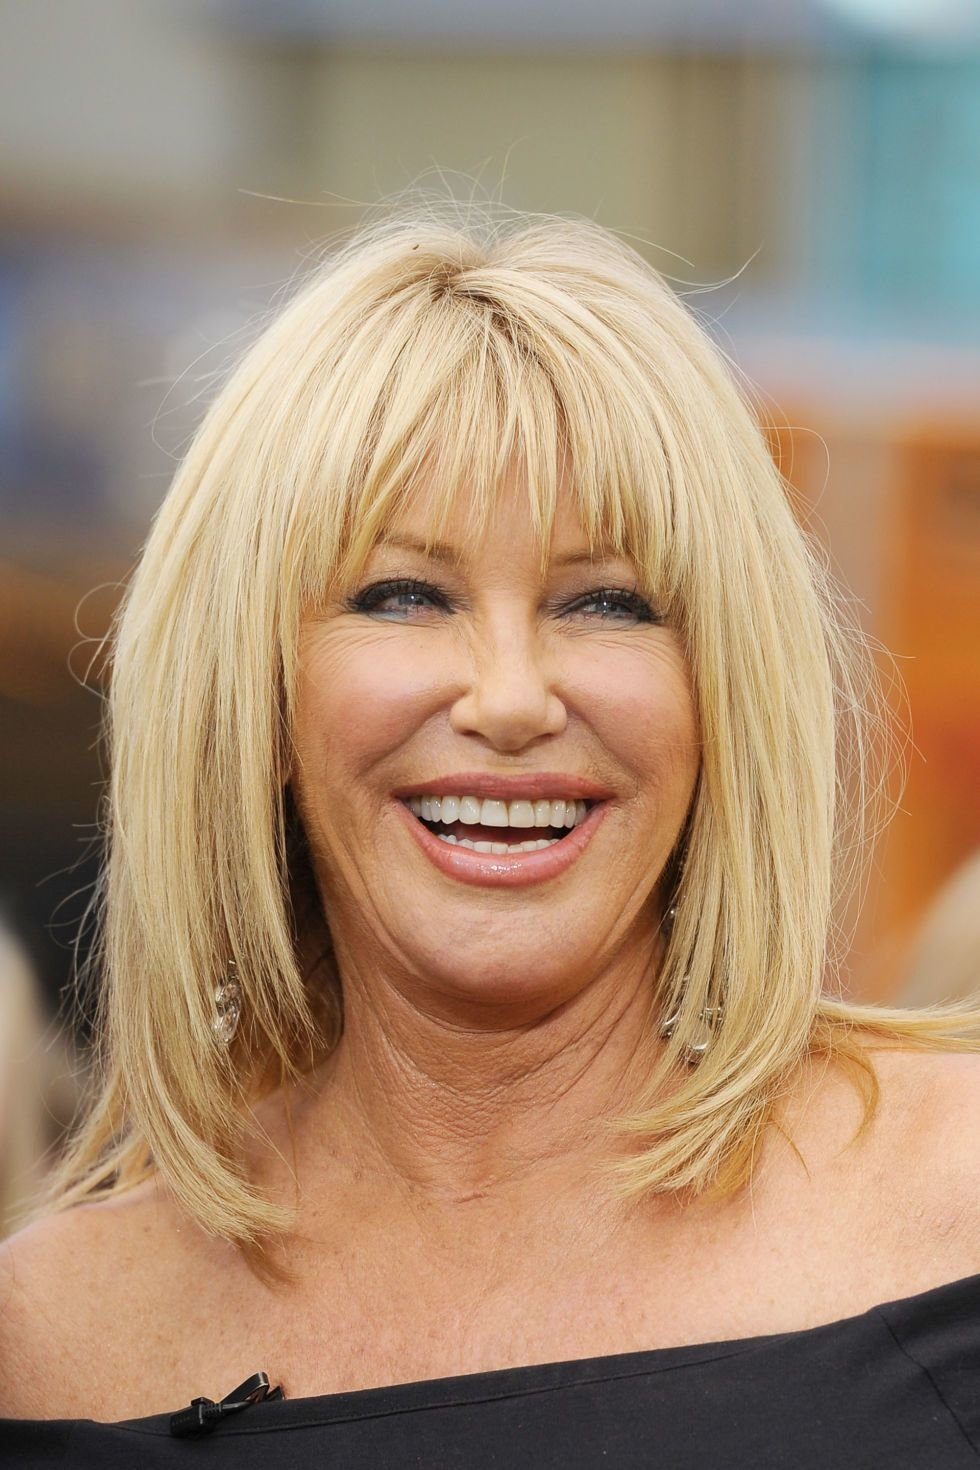 The Best Flattering Hairstyles For Women Over 50 Fave Hairstyles Pictures